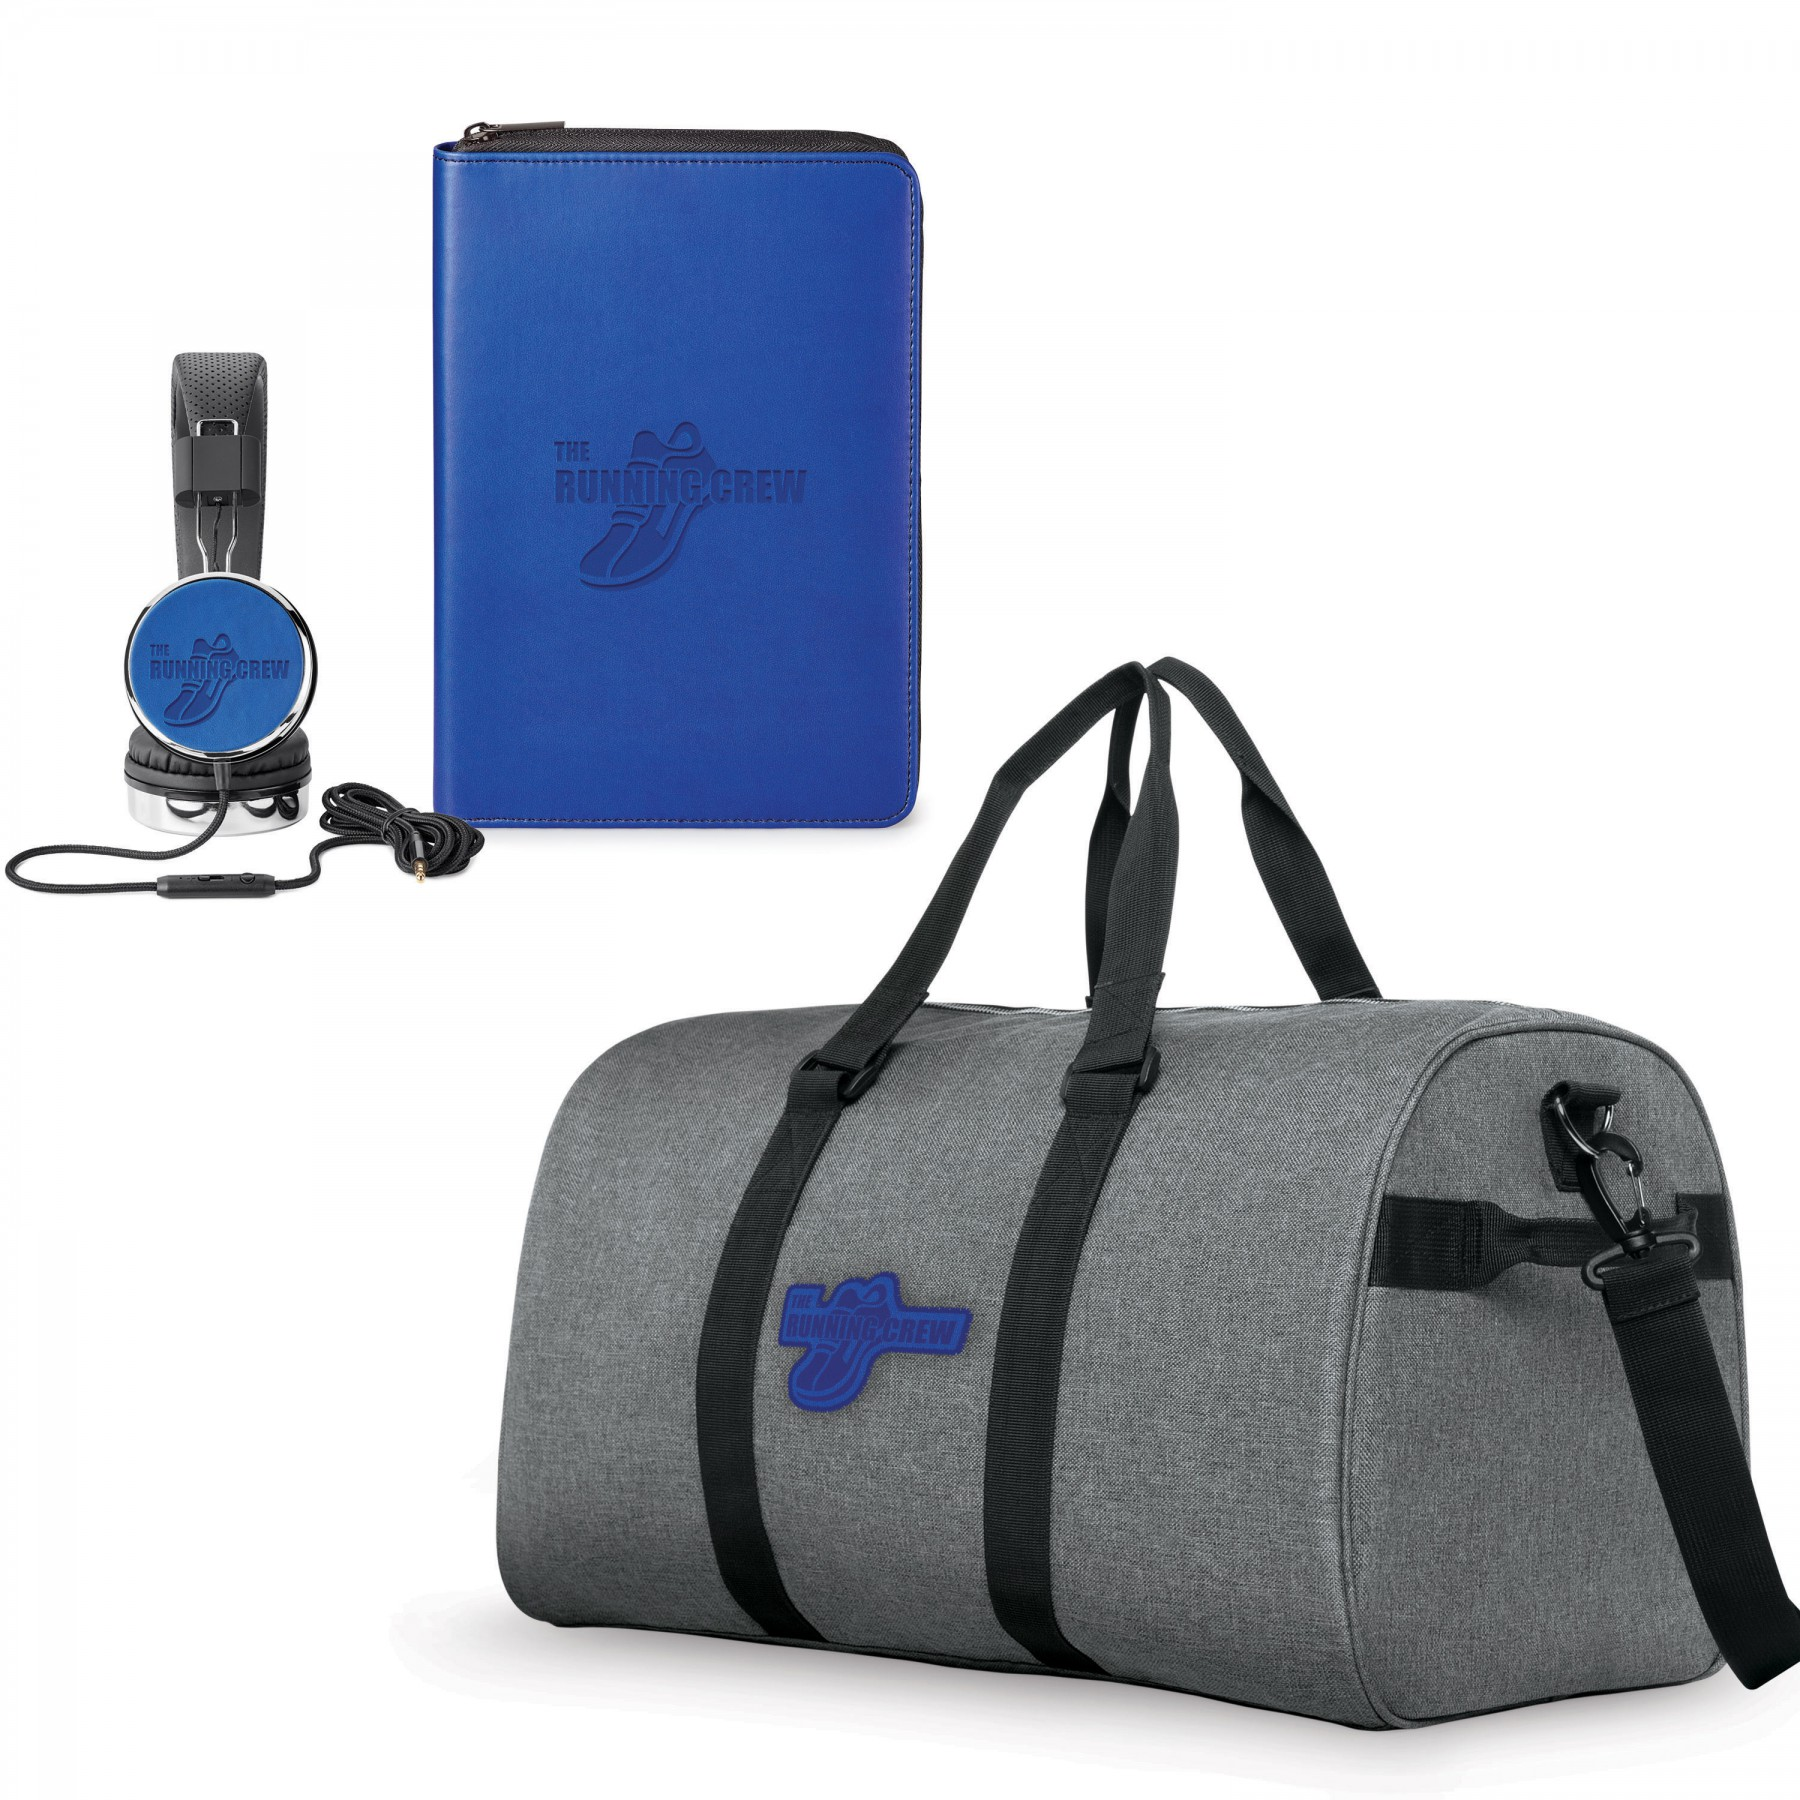 Nomad Must Haves Duffle Donald Bundle, BB105, Debossed Logo